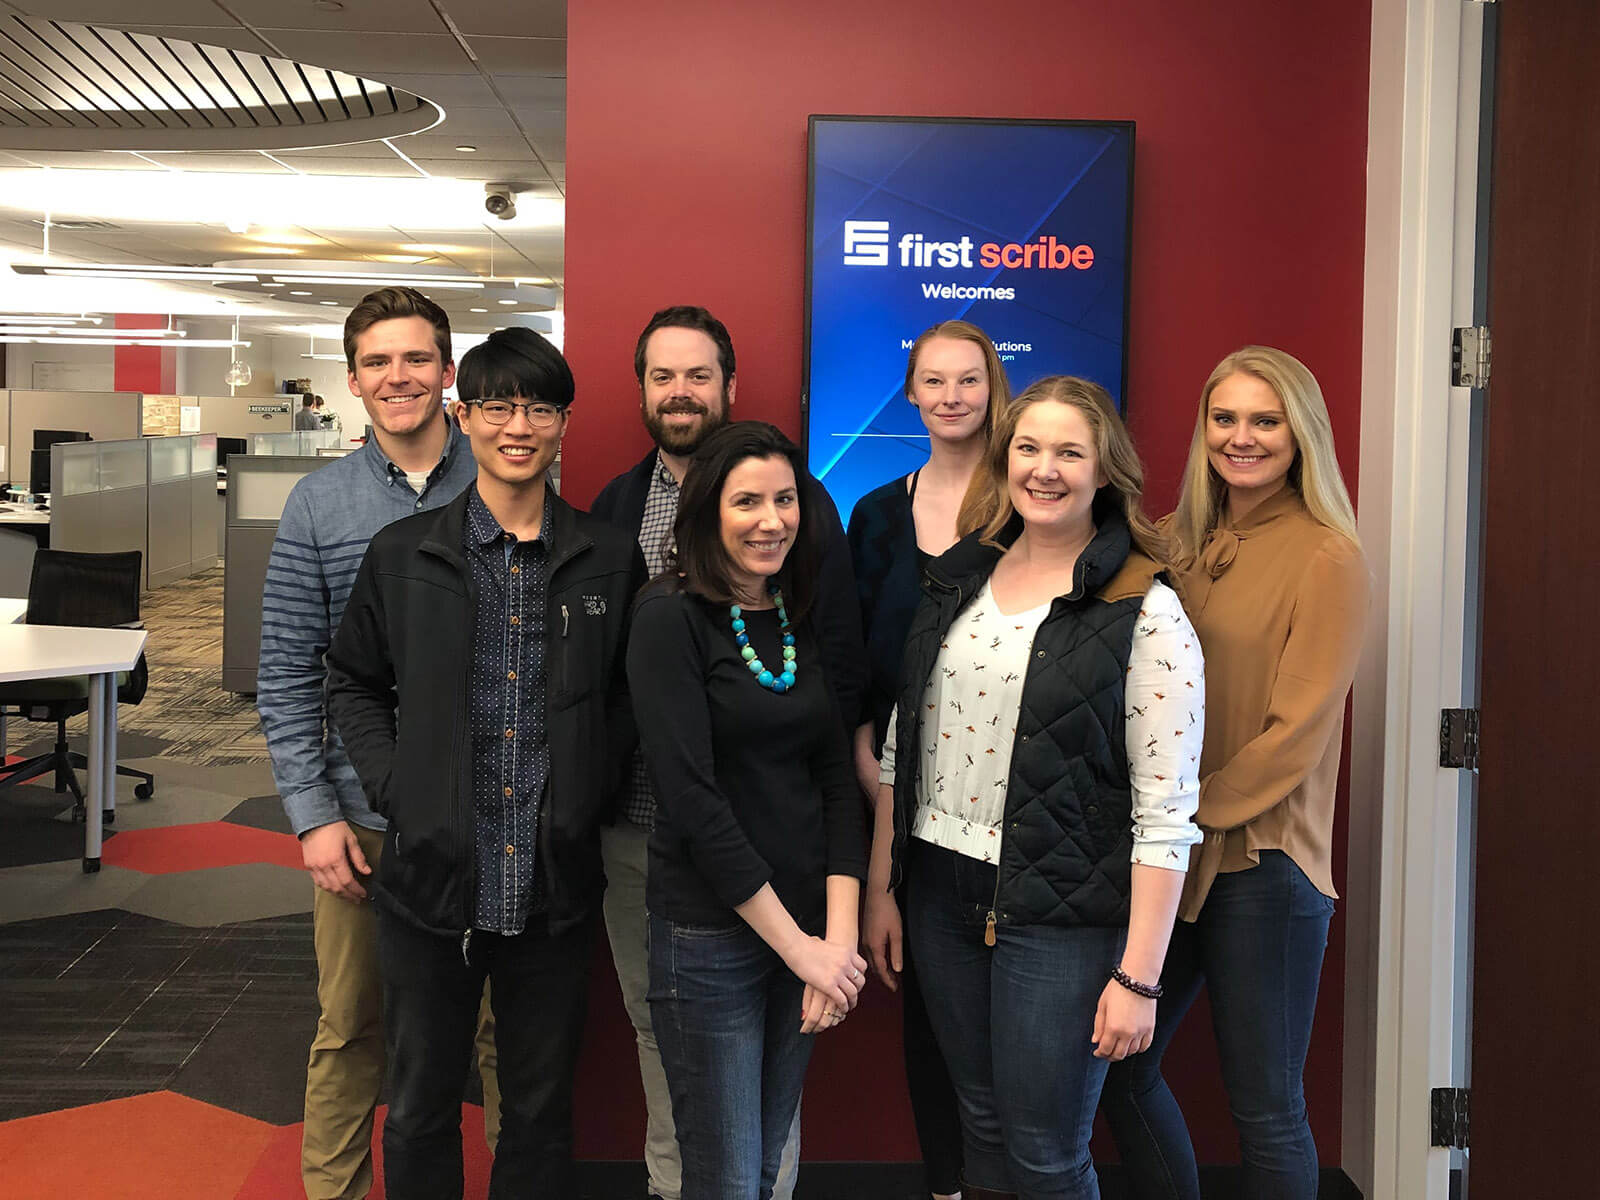 first scribe's spring 2019 new hires